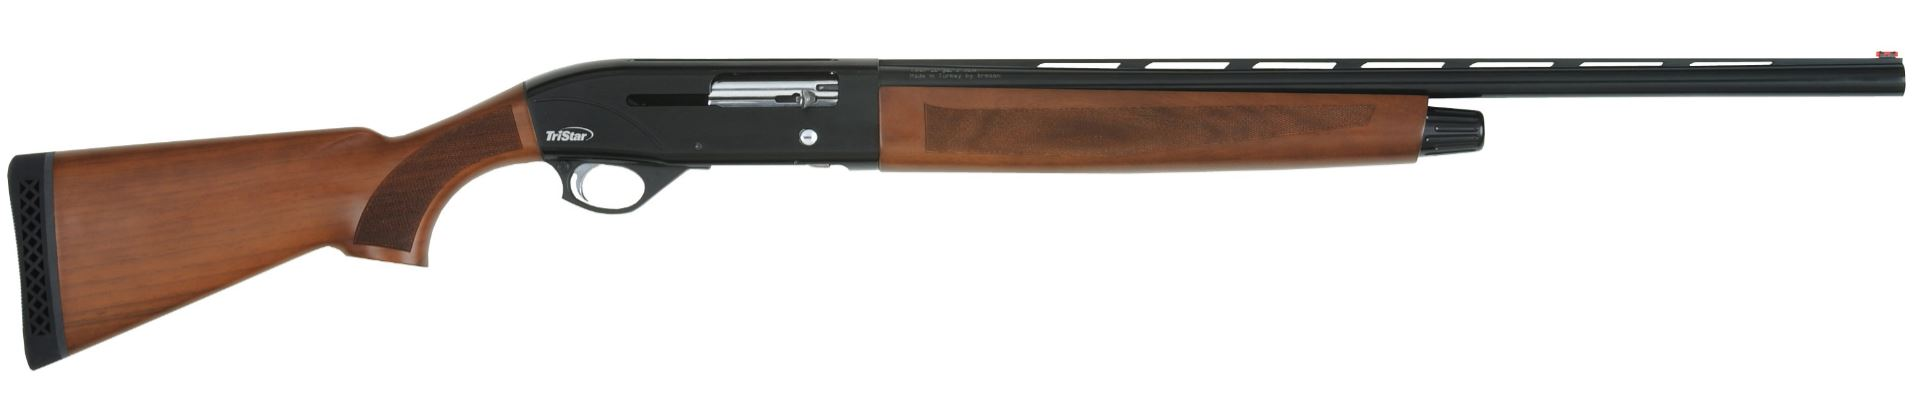 TriStar Sporting Arms Viper G2 Youth/Compact 20 Gauge